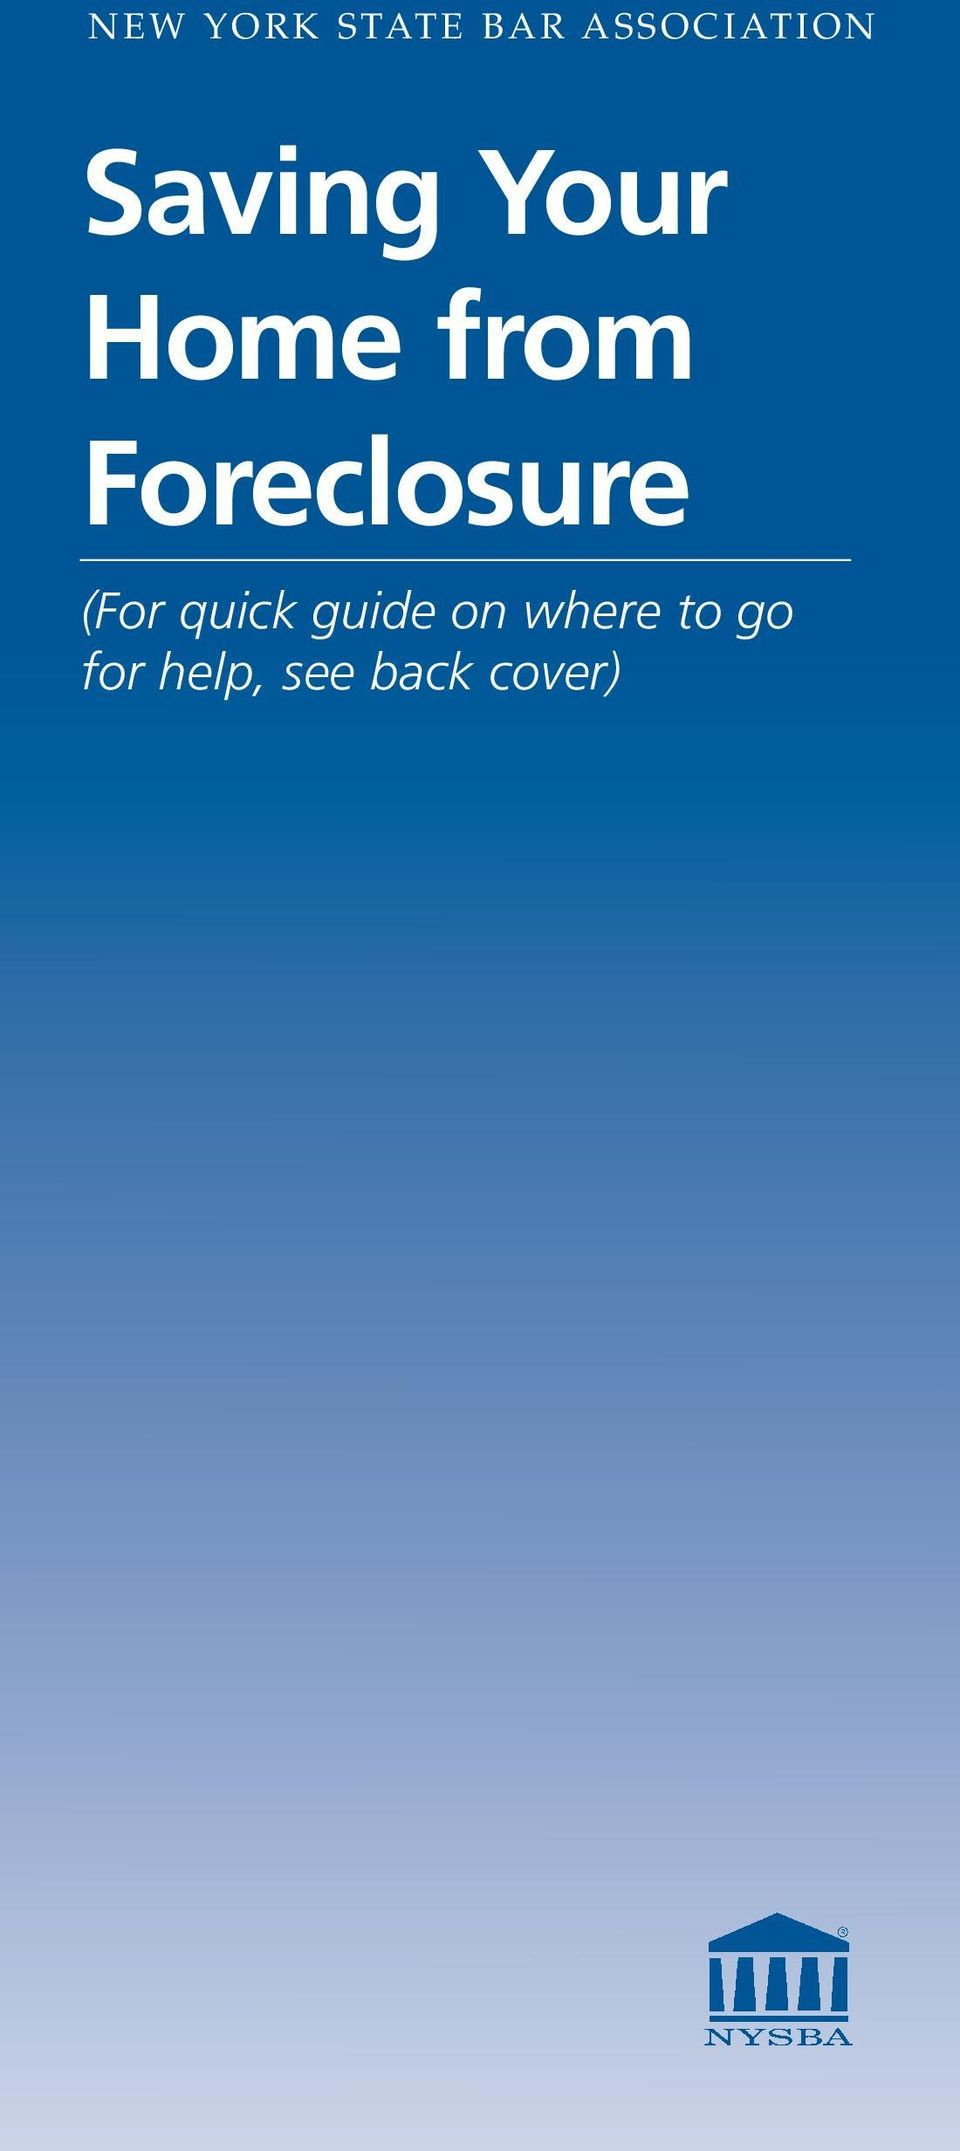 guide on where to go for help, see